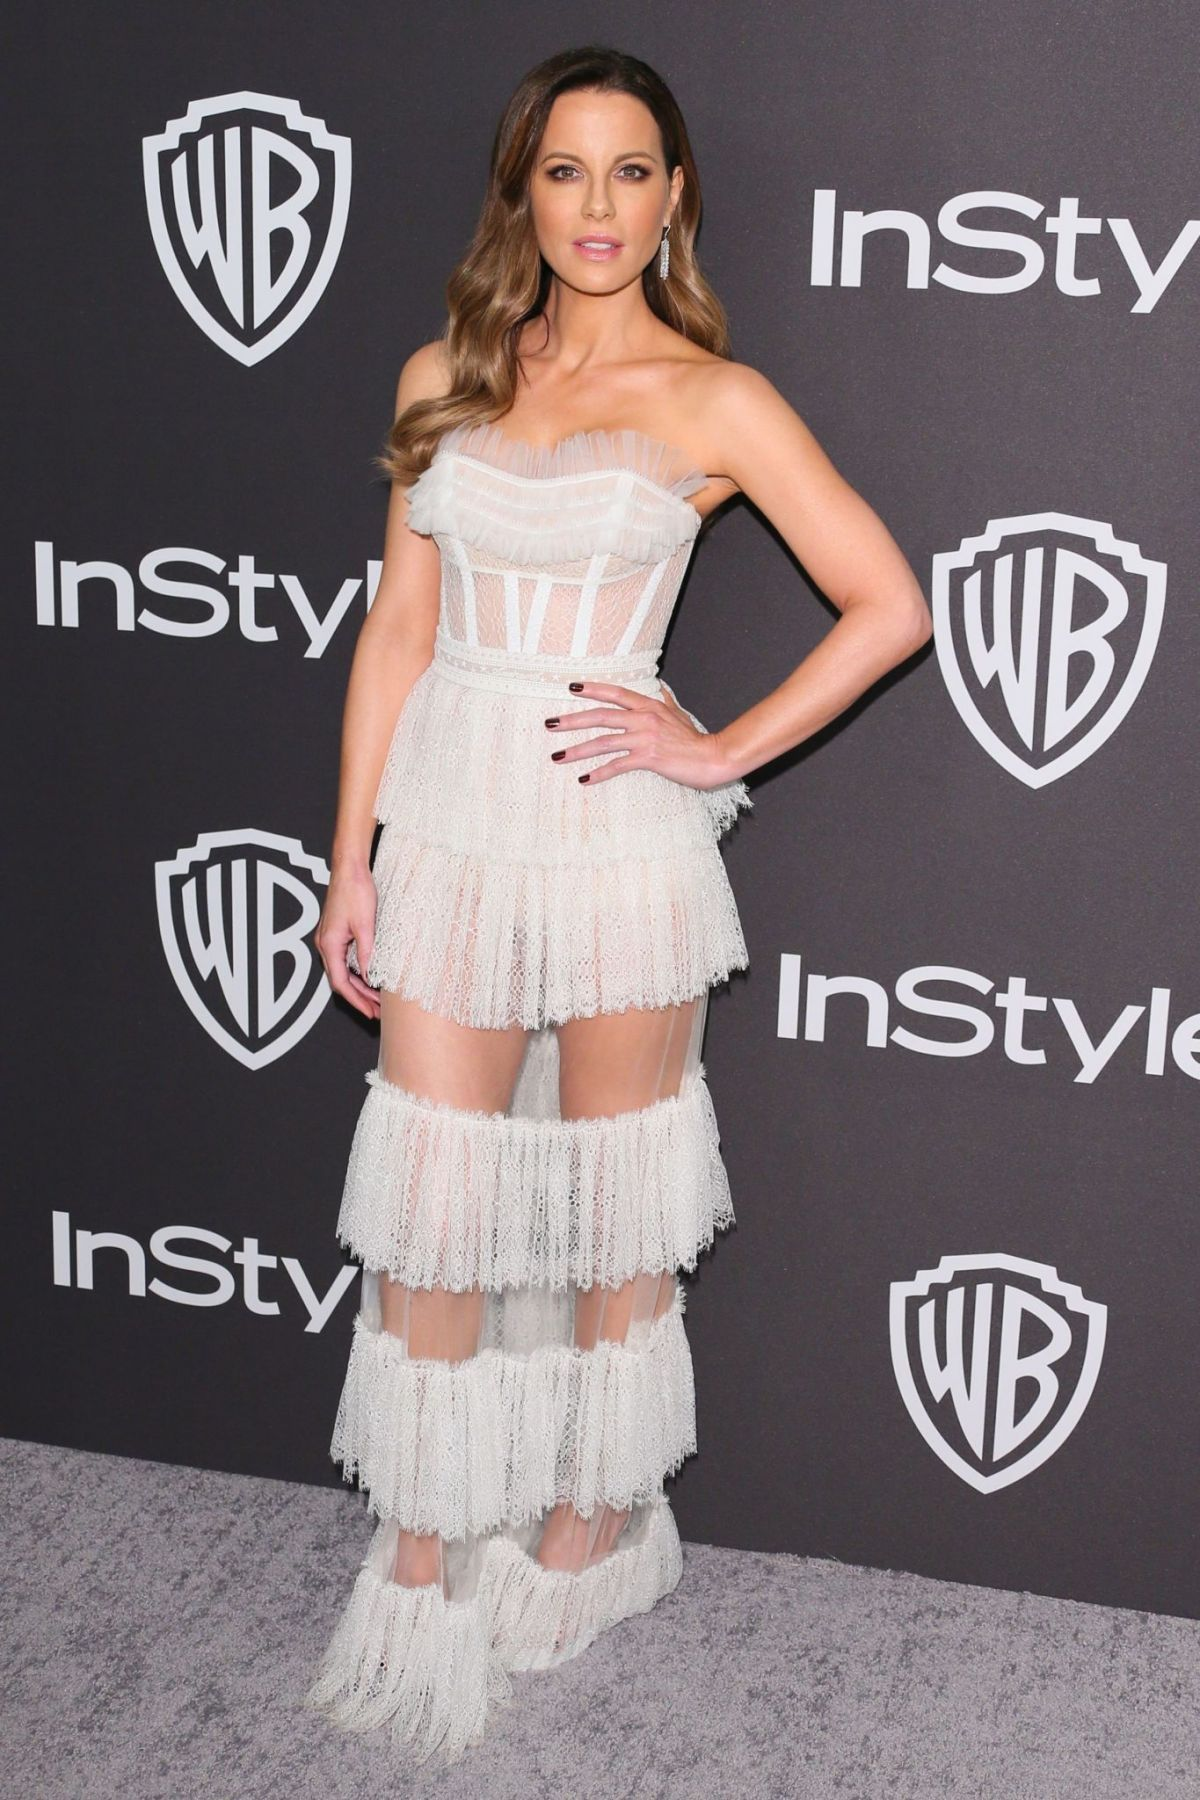 kate-beckinsale-at-instyle-and-warner-bros-golden-globe-awards-afterparty-in-beverly-hills-01-06-2019-2.jpg